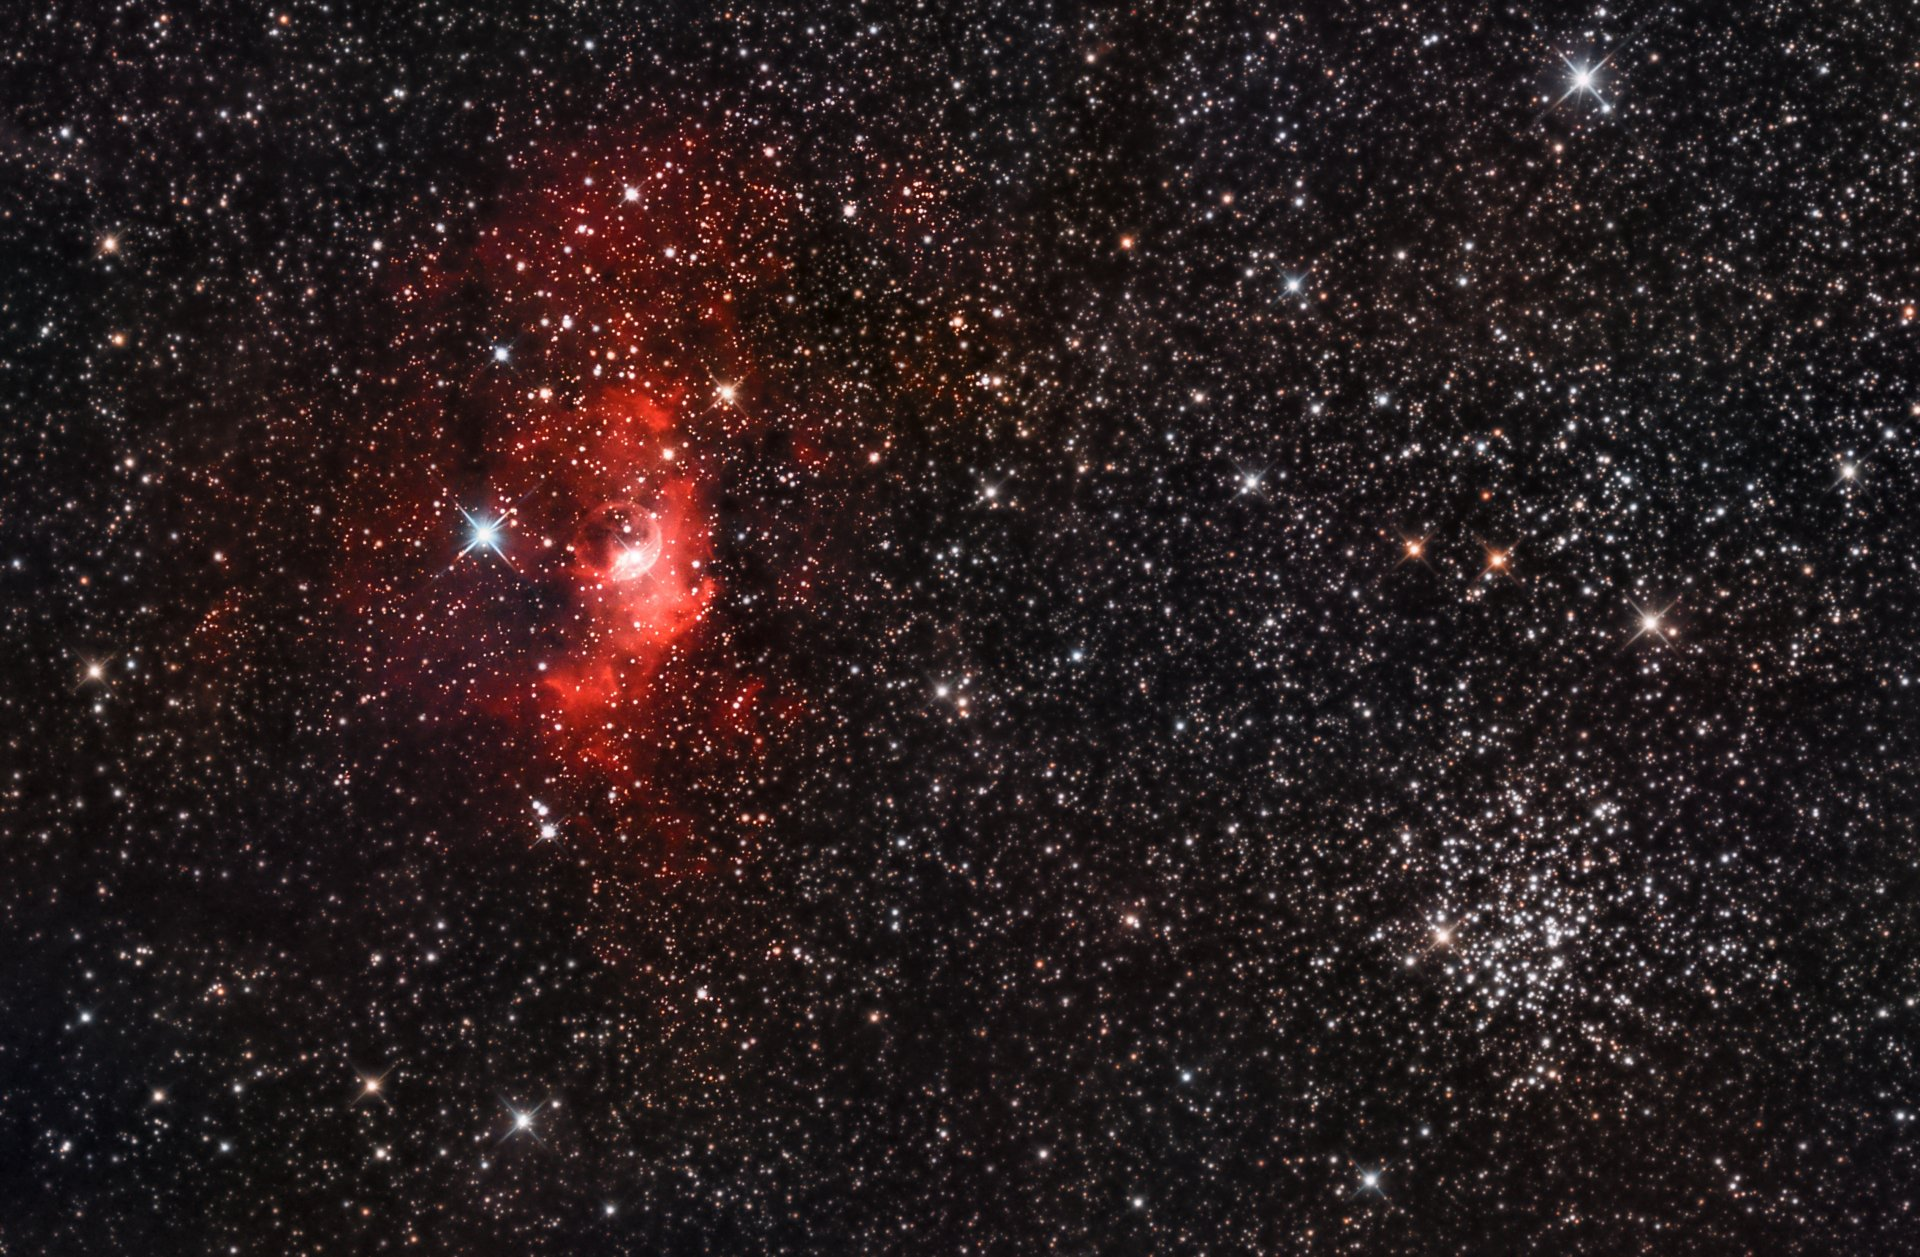 NGC 7635 Bubble Nebula & Open Cluster Messier 52